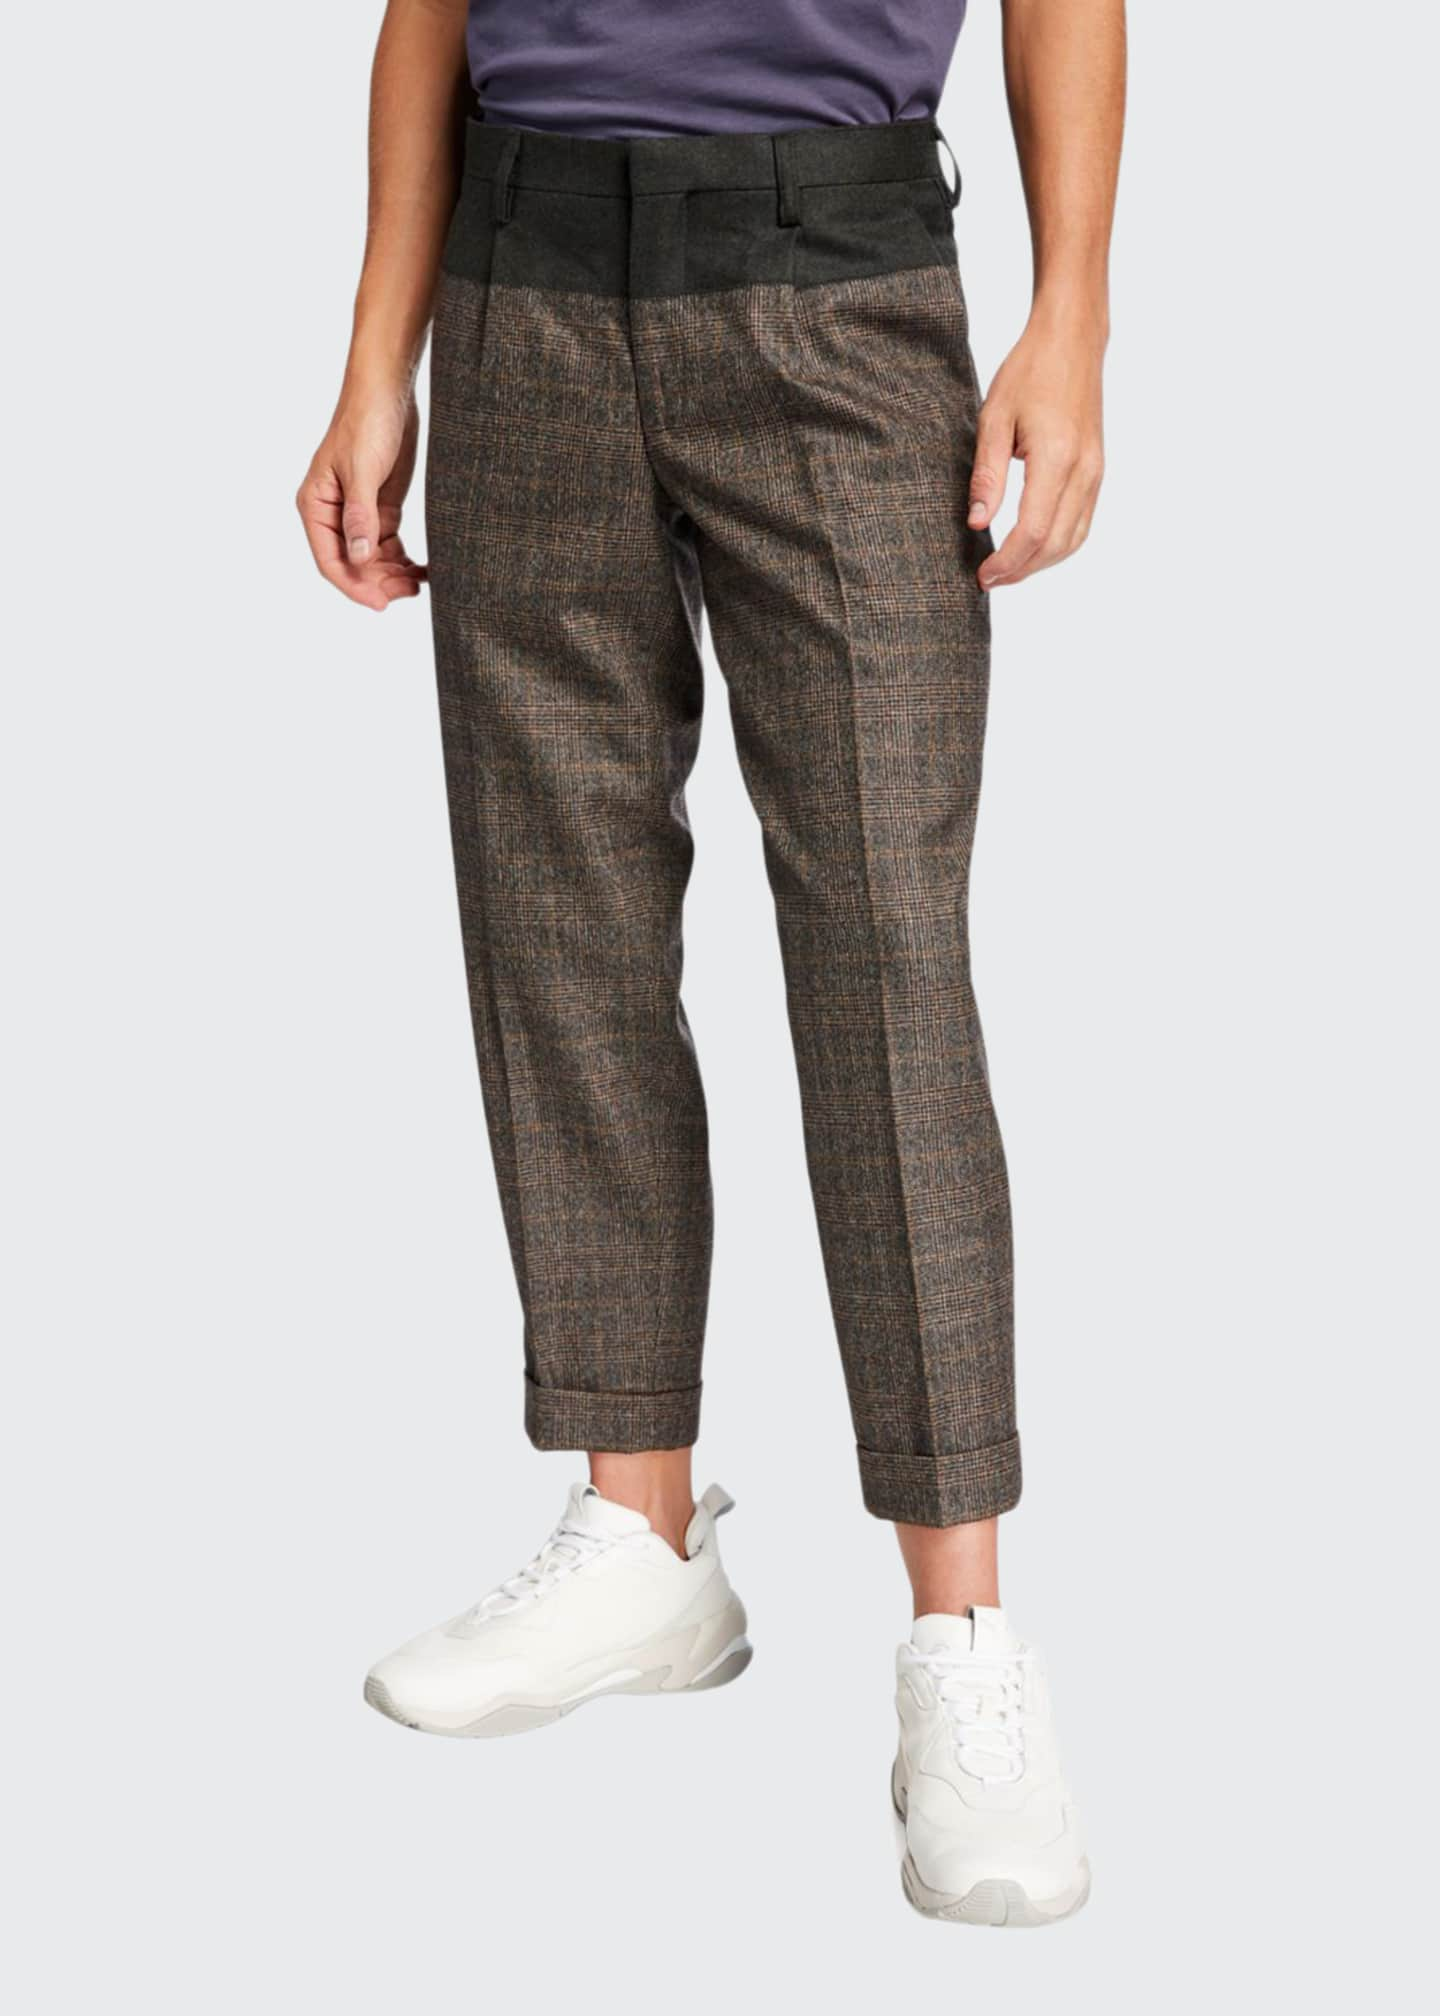 Kolor Men's Glen Plaid Cuffed Top-Block Trousers